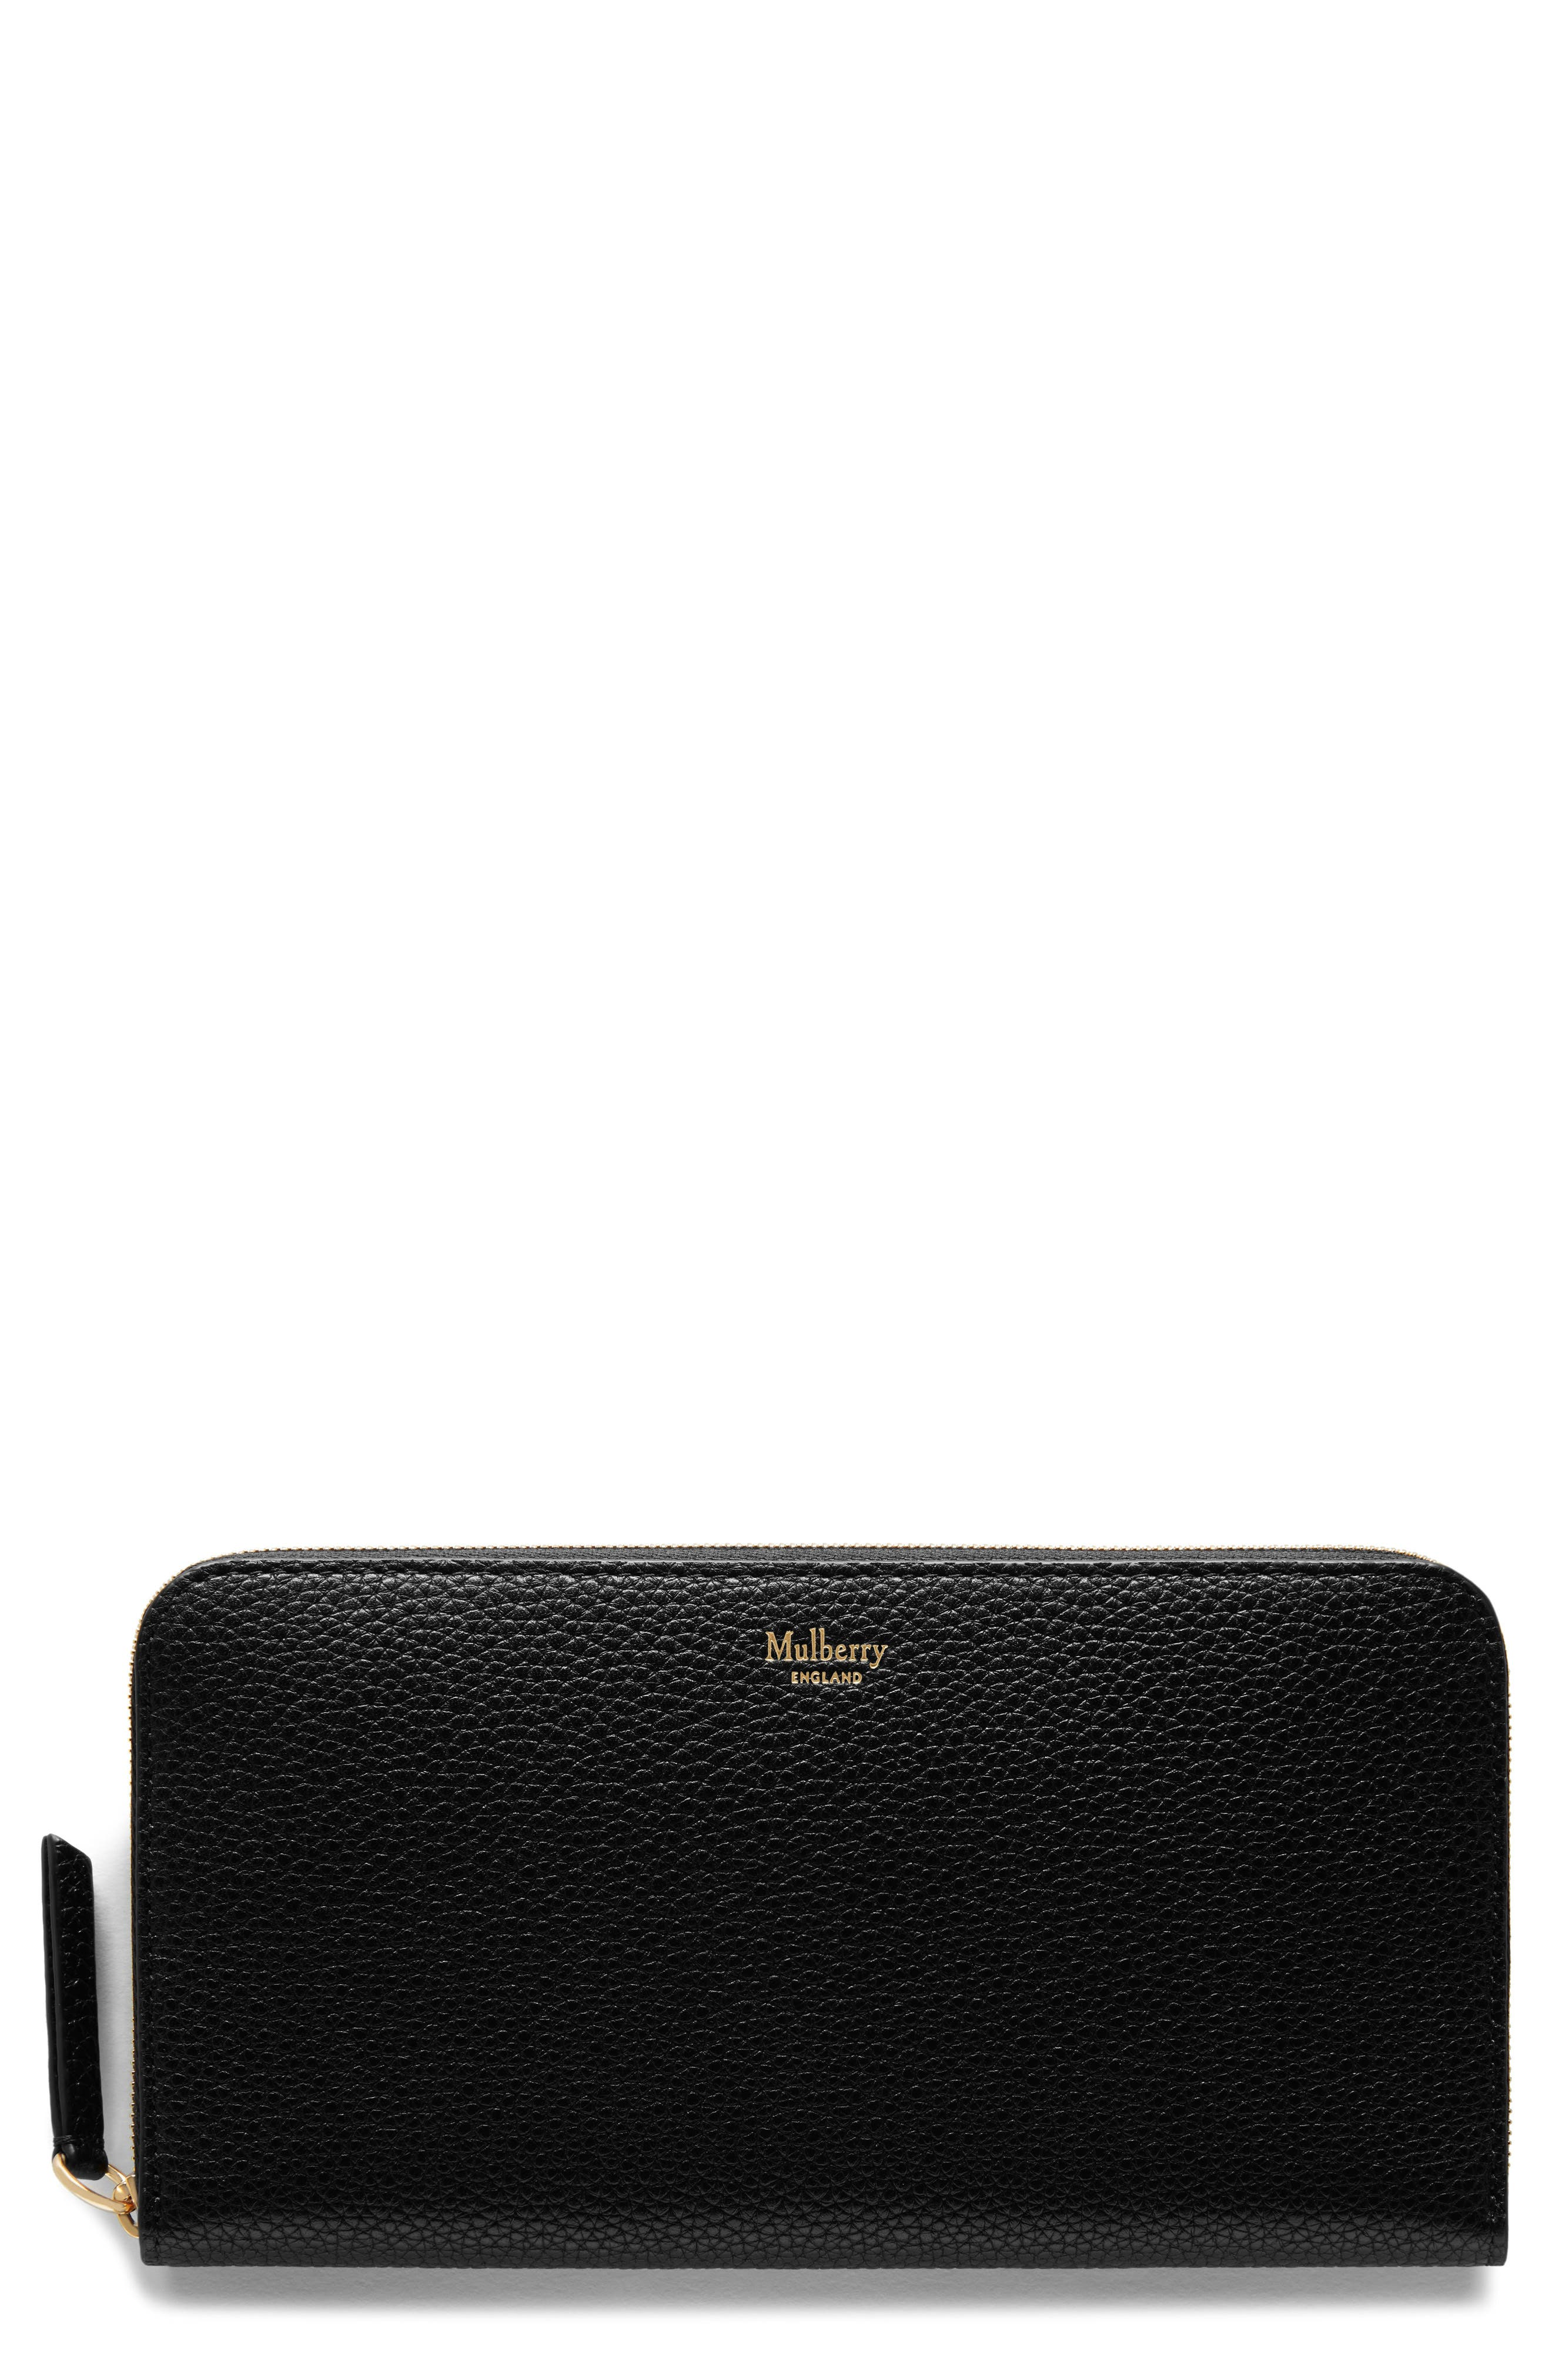 Main Image - Mulberry Zip Around Leather Wallet